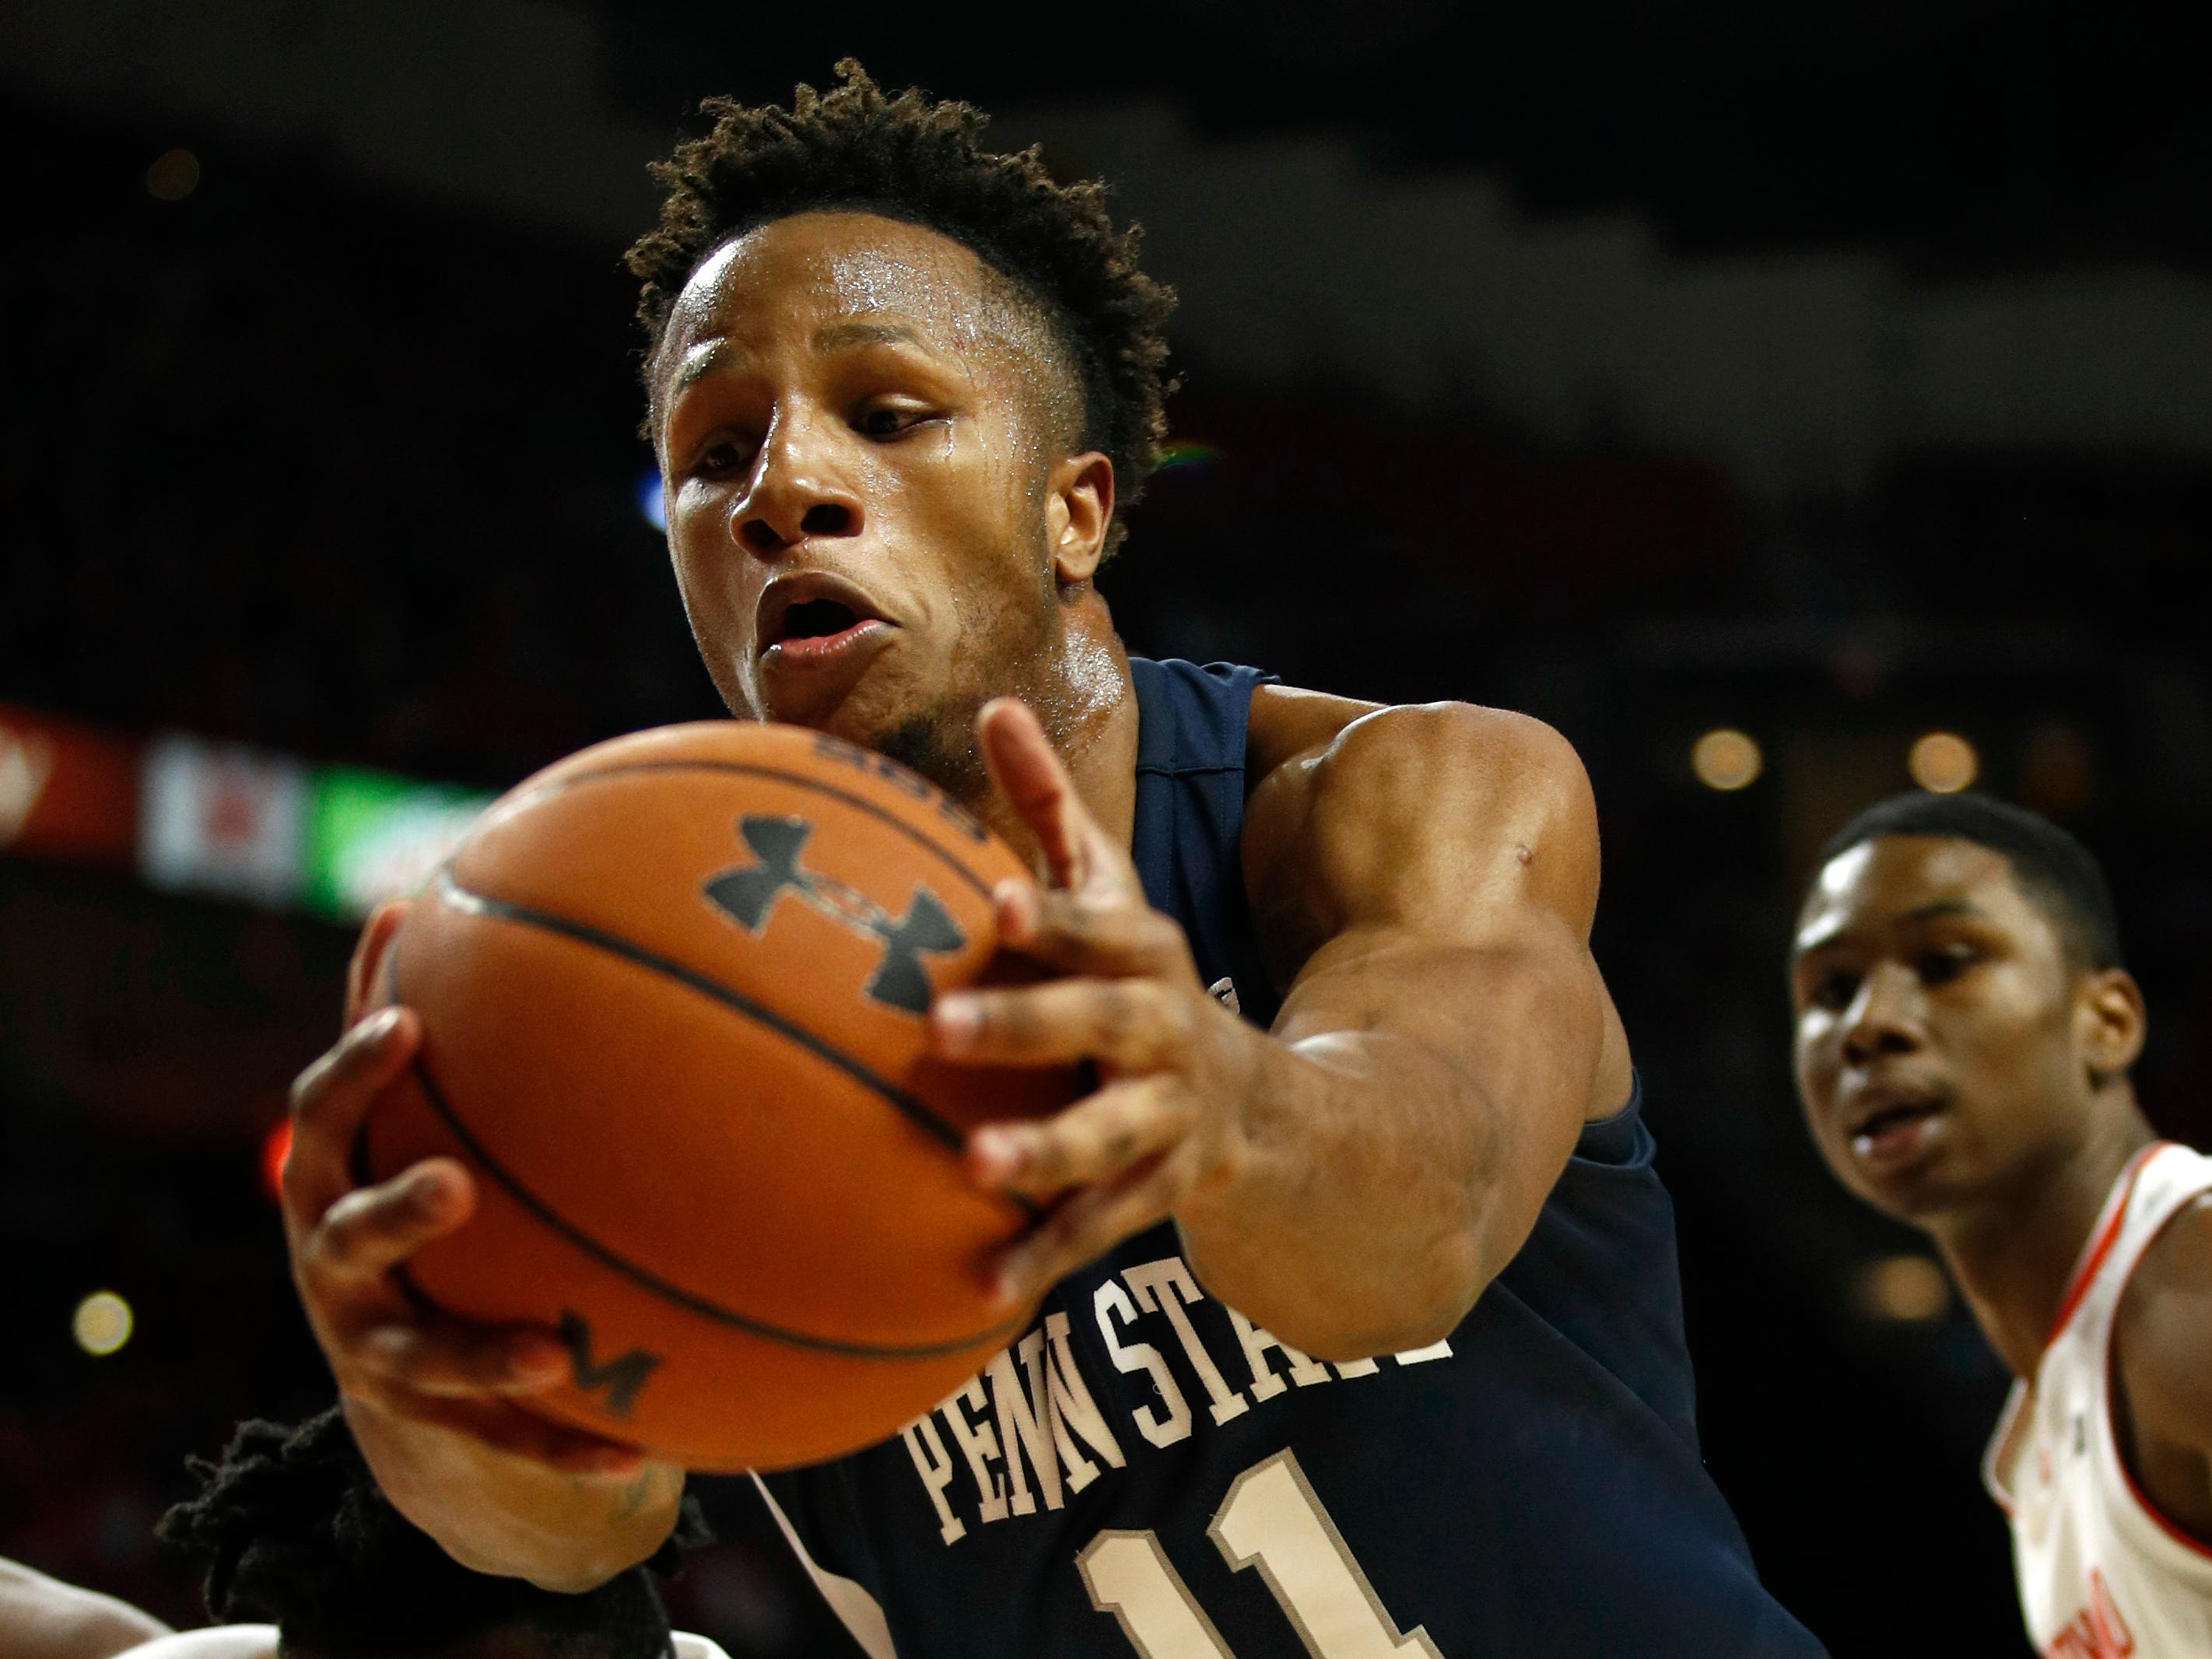 Penn State forward Lamar Stevens (11) grabs a rebound in front of Maryland forward Jalen Smith, back left, and guard Serrel Smith Jr. in the first half of an NCAA college basketball game, Saturday, Dec. 1, 2018, in College Park, Md. (AP Photo/Patrick Semansky)